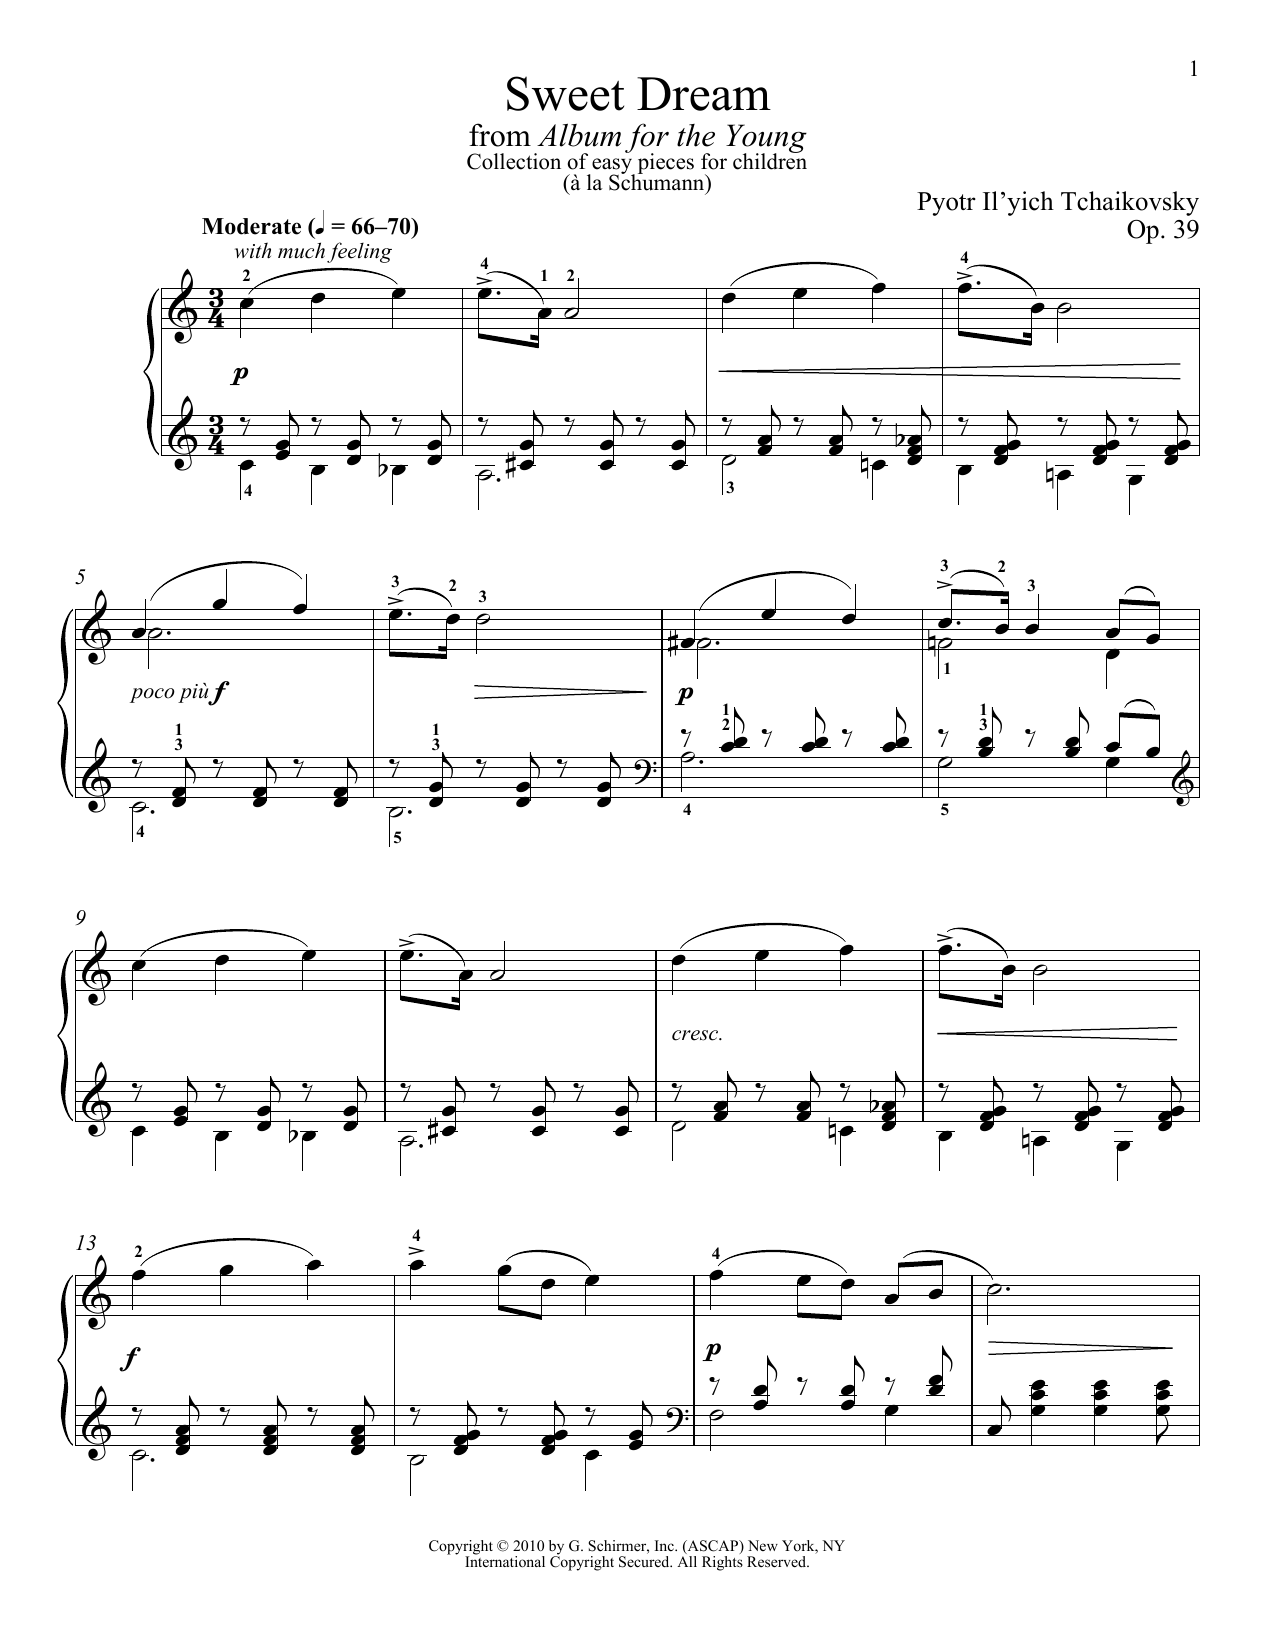 Download Pyotr Il'yich Tchaikovsky 'Sweet Dream (Douce Reverie), Op. 39, No. 21 (from Album For The Young)' Digital Sheet Music Notes & Chords and start playing in minutes